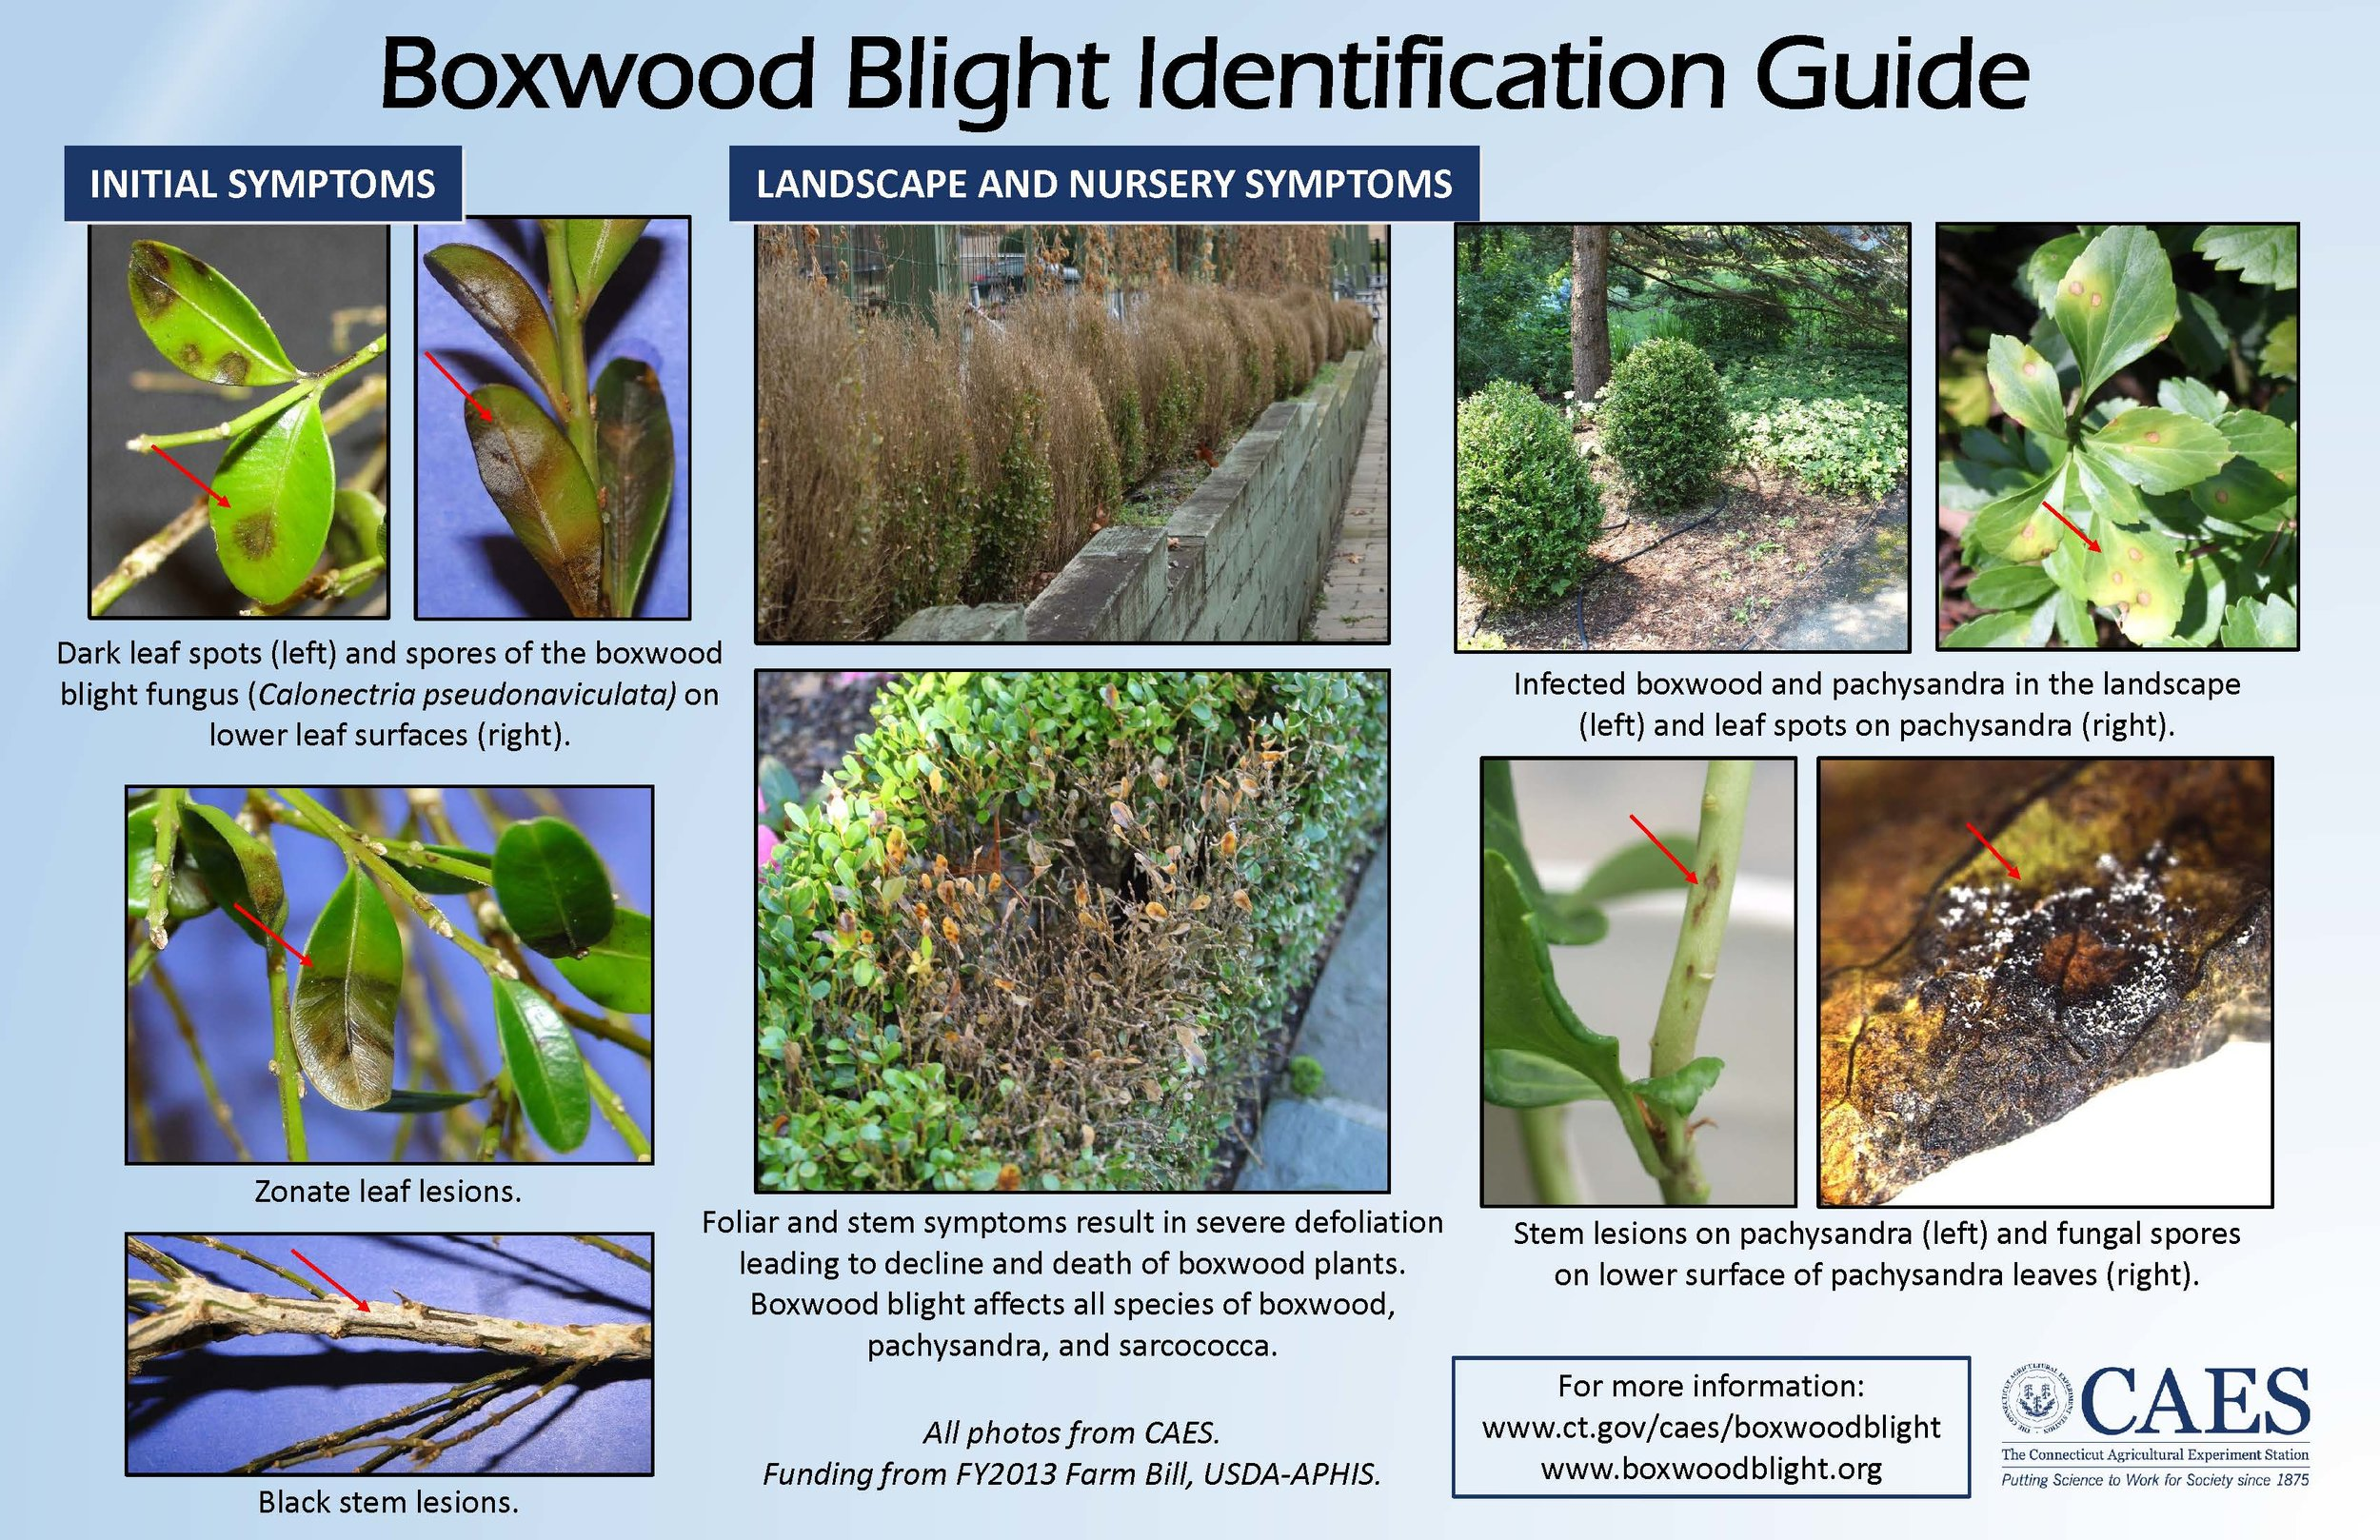 The Connecticut Agricultural Experiment Station put together a great visual guide for diagnosing boxwood blight (click to see larger).